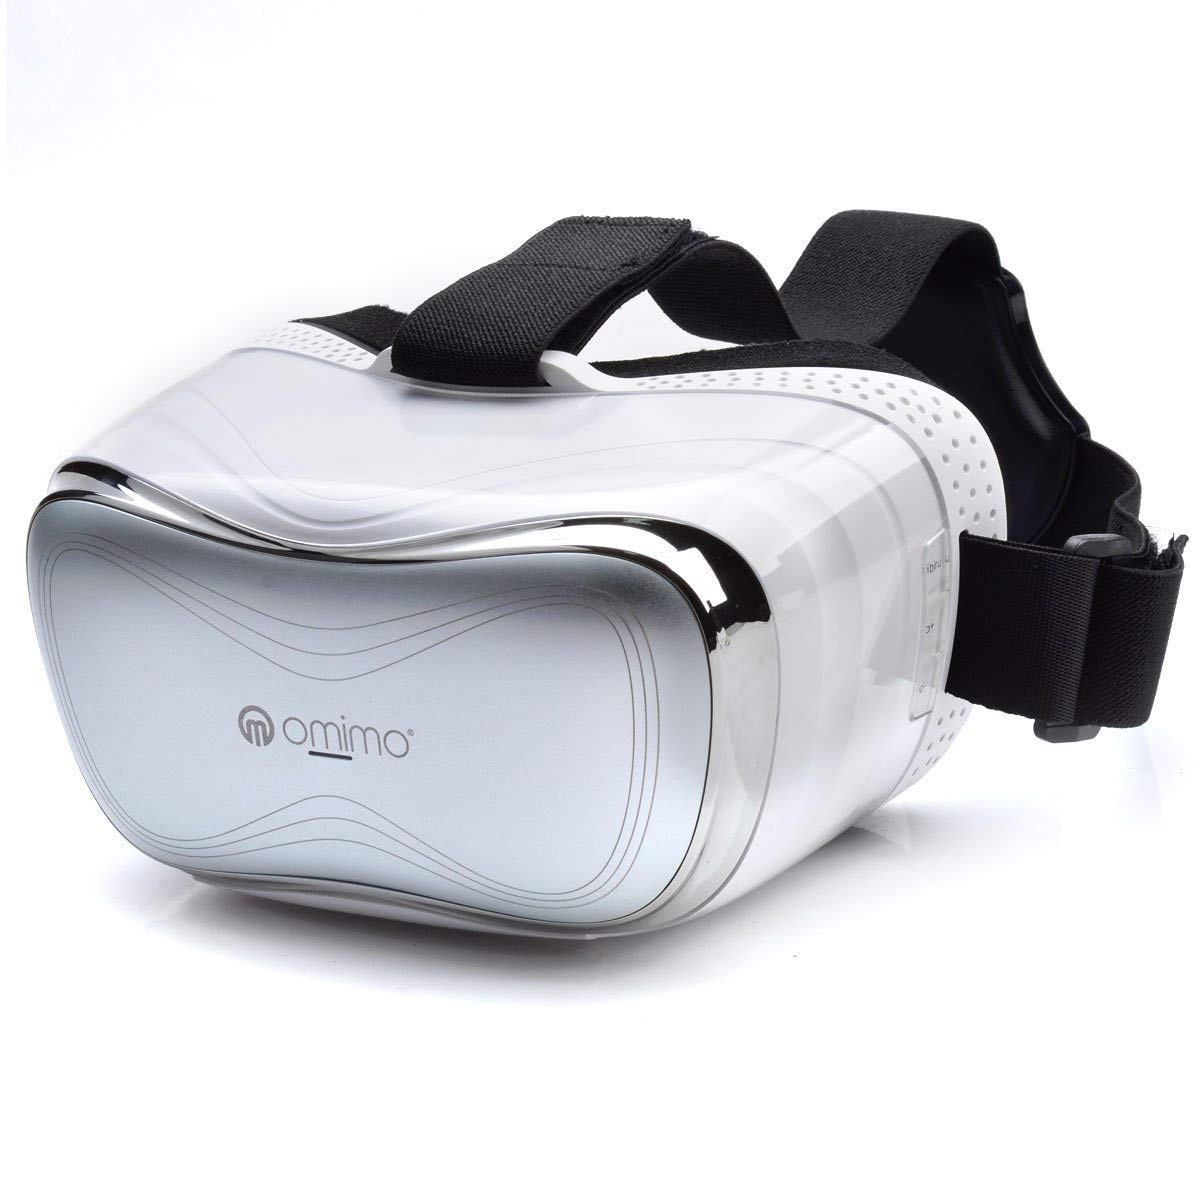 "Onimo VR All in One Amazon"" /></a></td><td style="